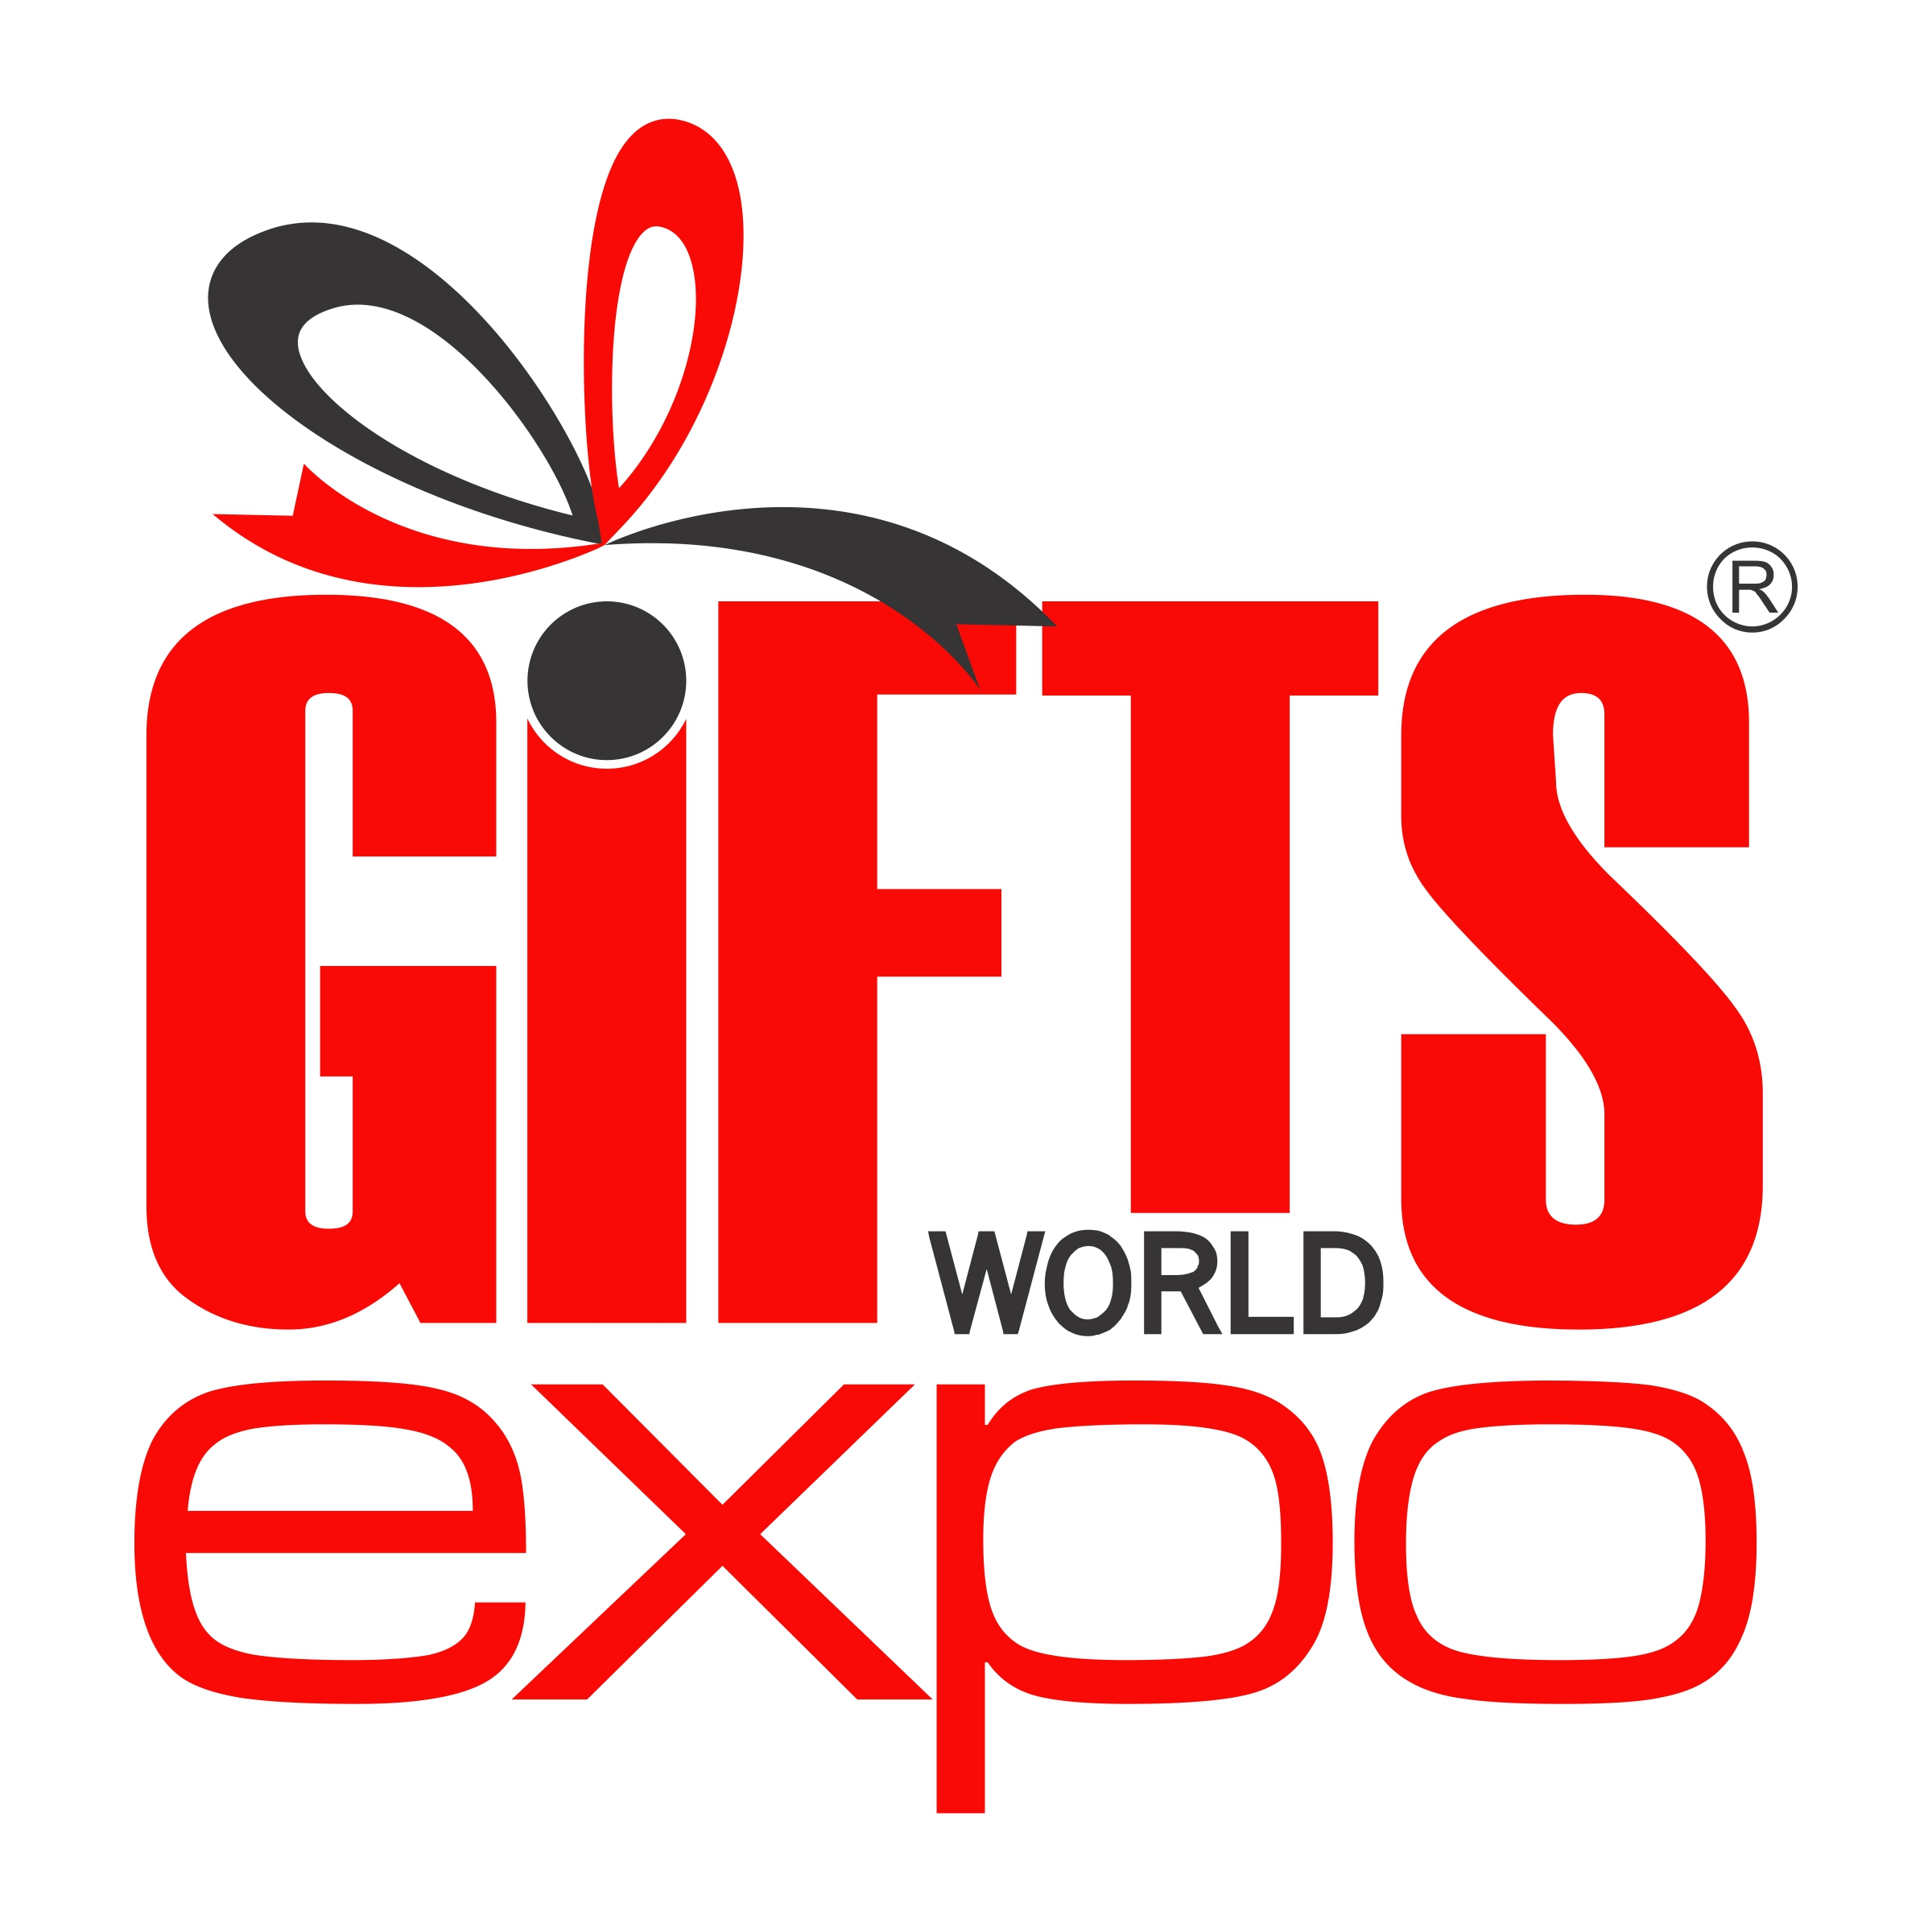 MEX Exhibitions Announces New Dates for Gifts World Expo - New Delhi 2020